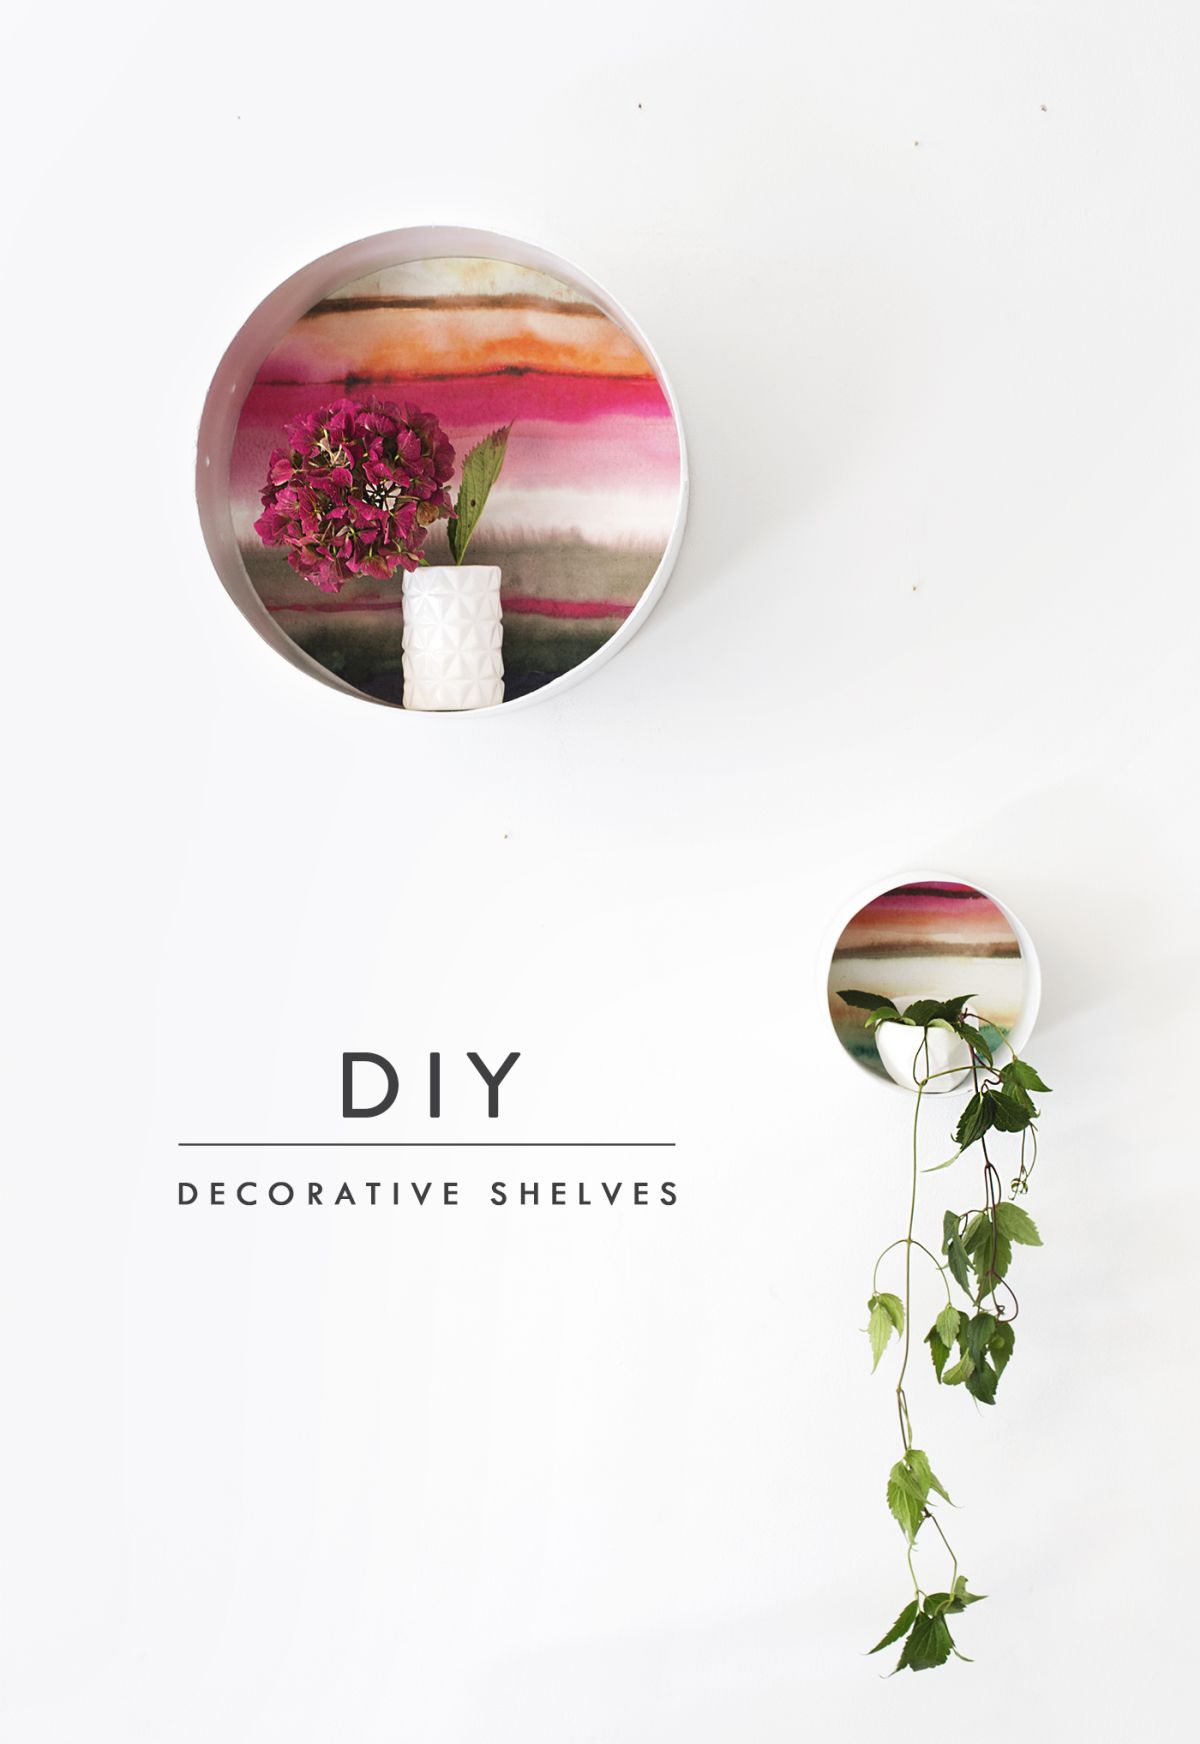 DIY decorative round shelves